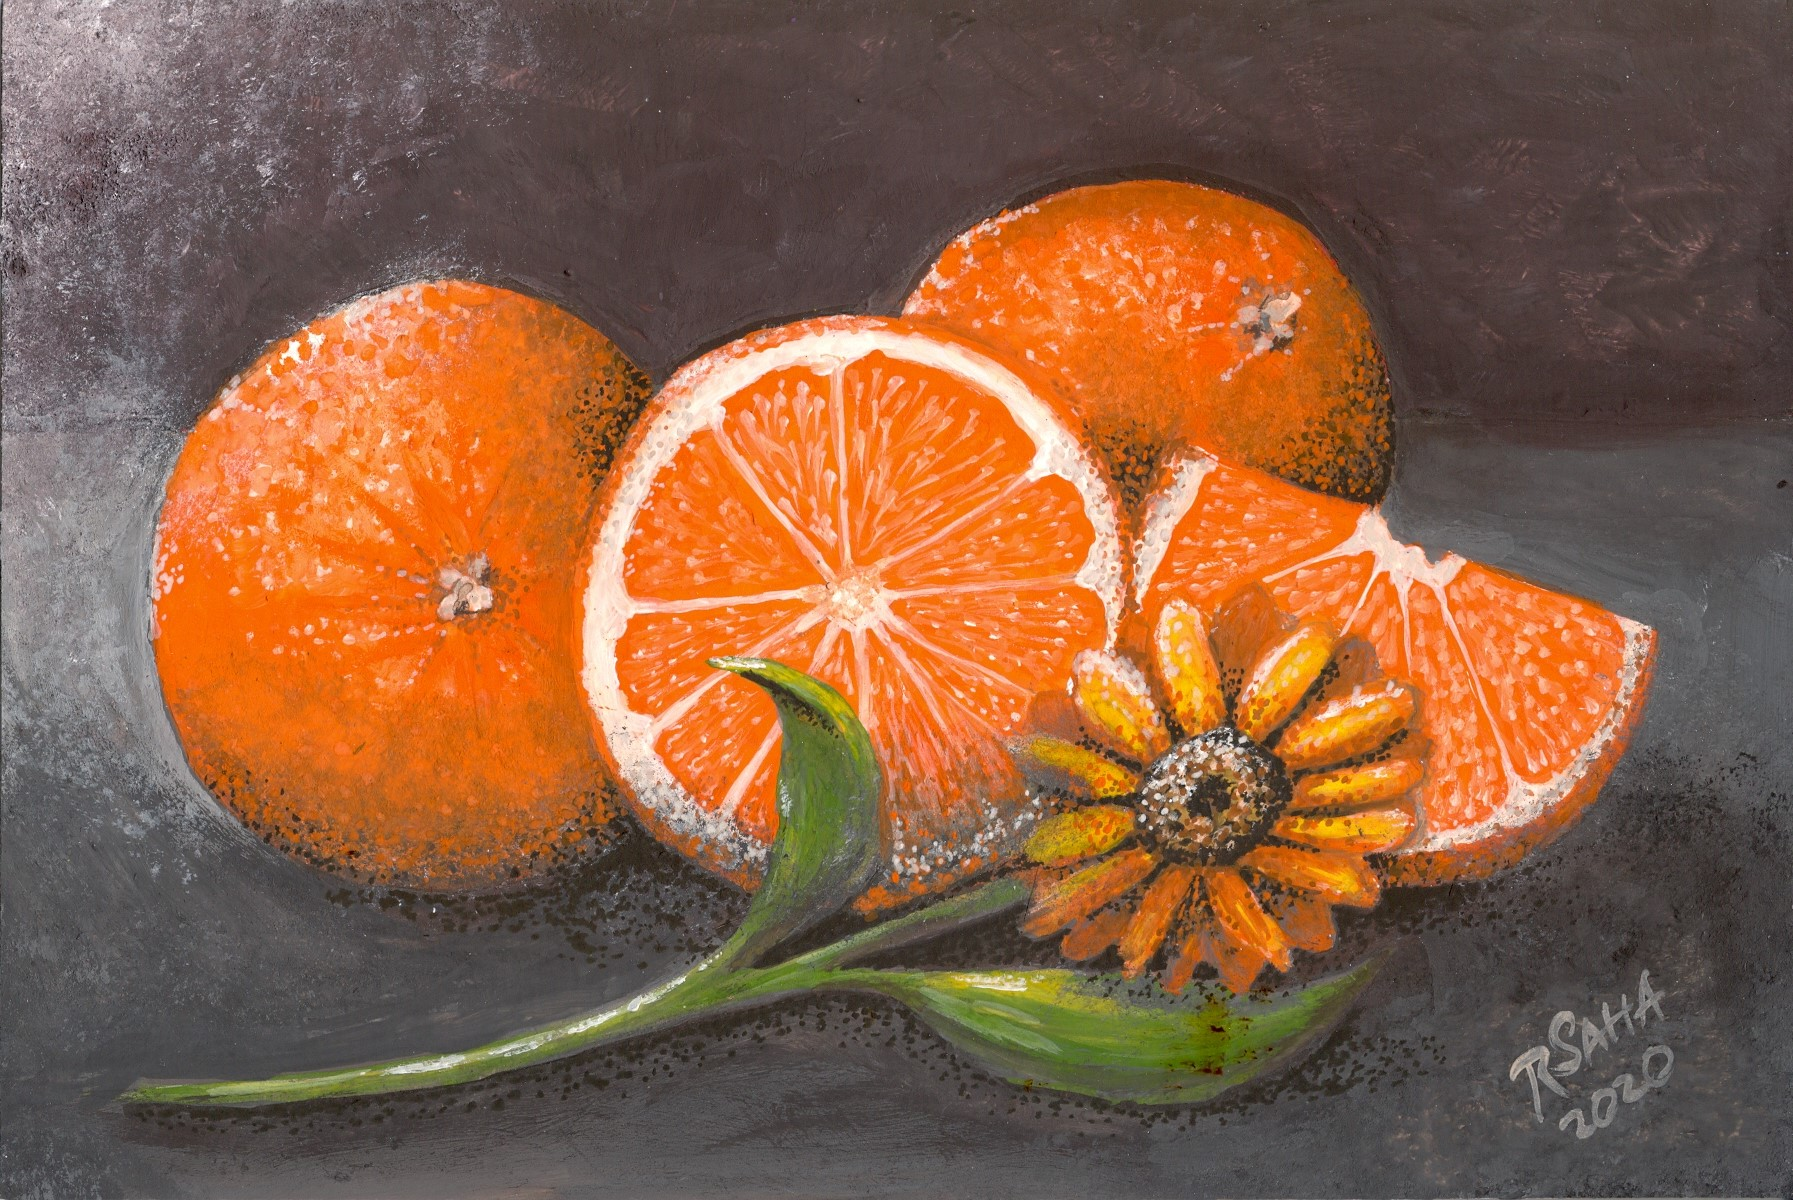 """""""Oranges,"""" gouache on mineral paper, 9.5 x 6.5 inches"""